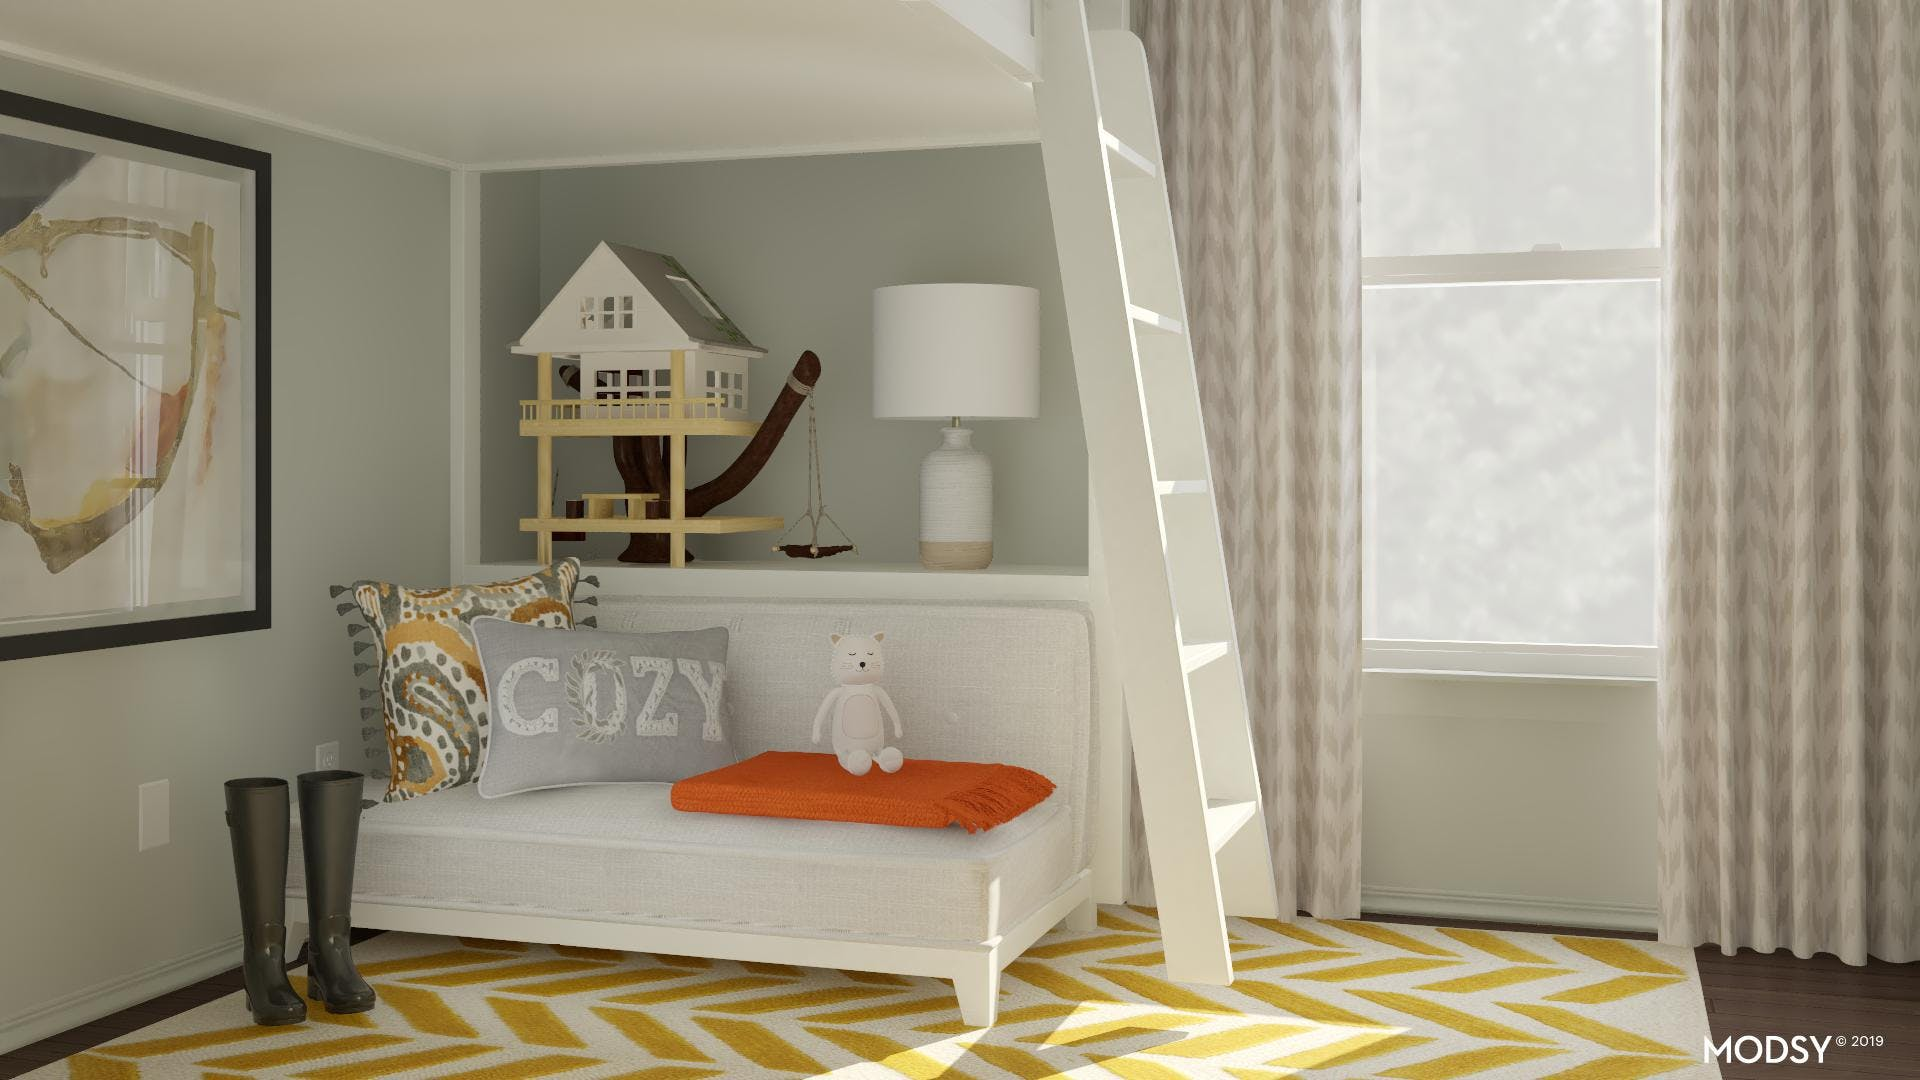 Clutter-Free Rustic And Earthy Kids Room